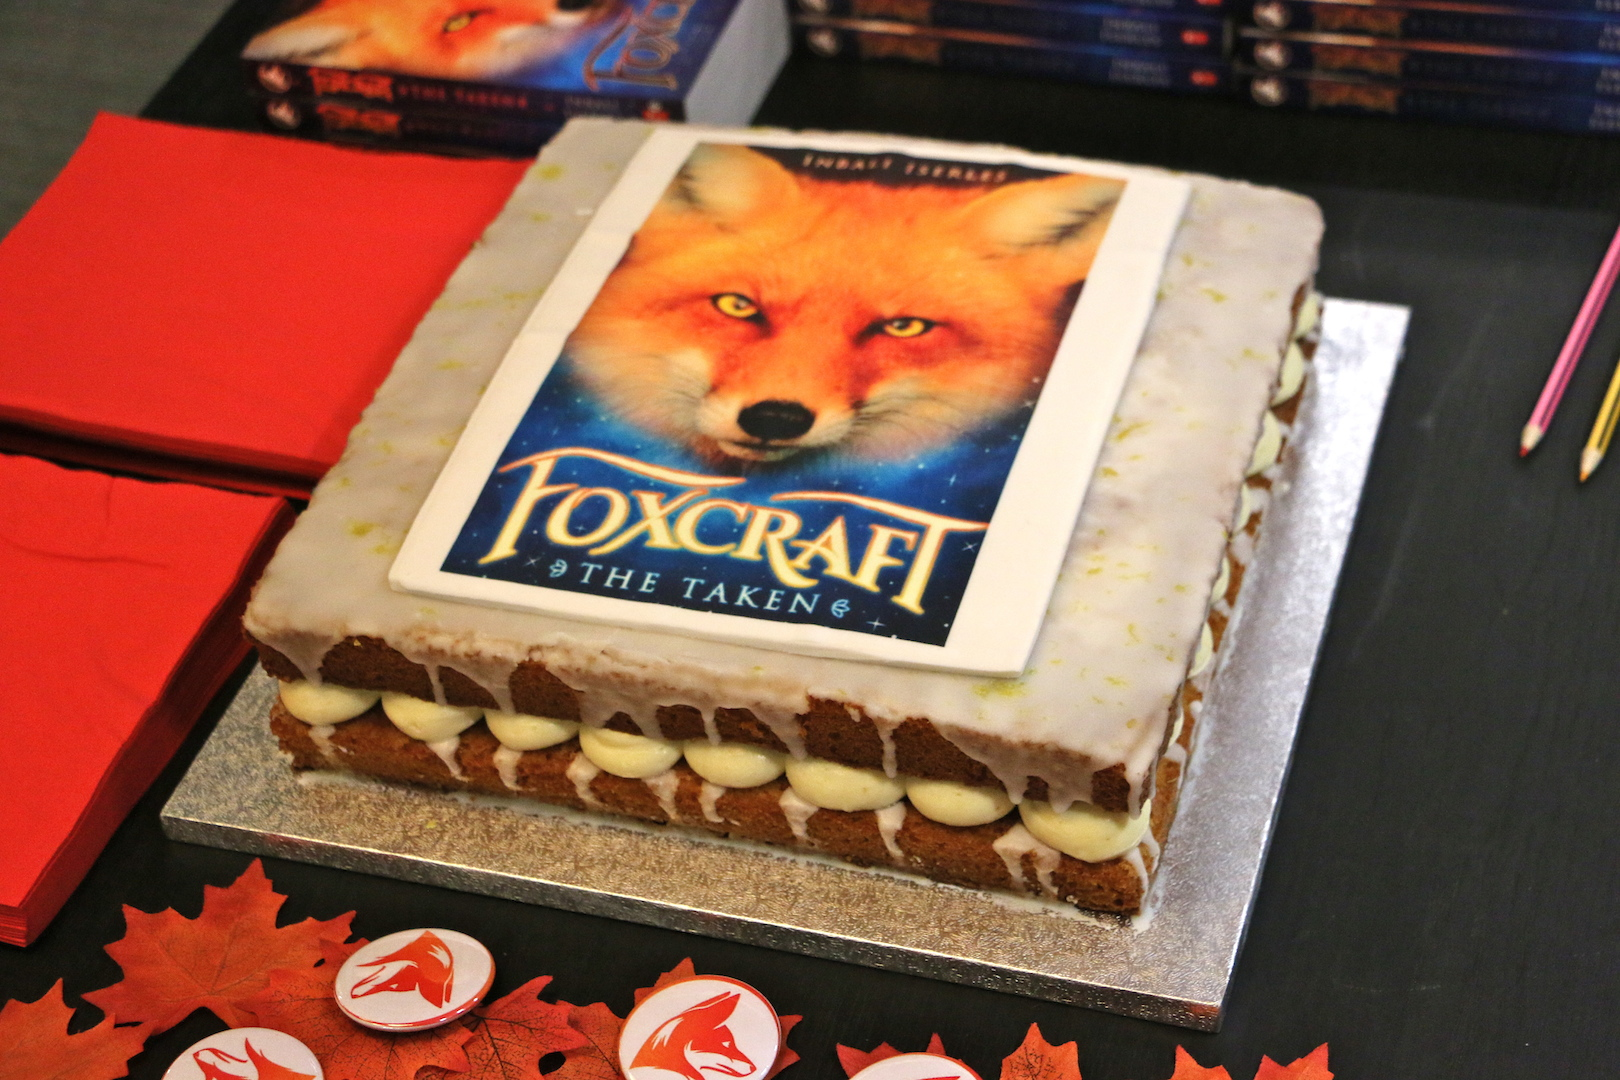 The glorious (and delicious) Foxcraft cake